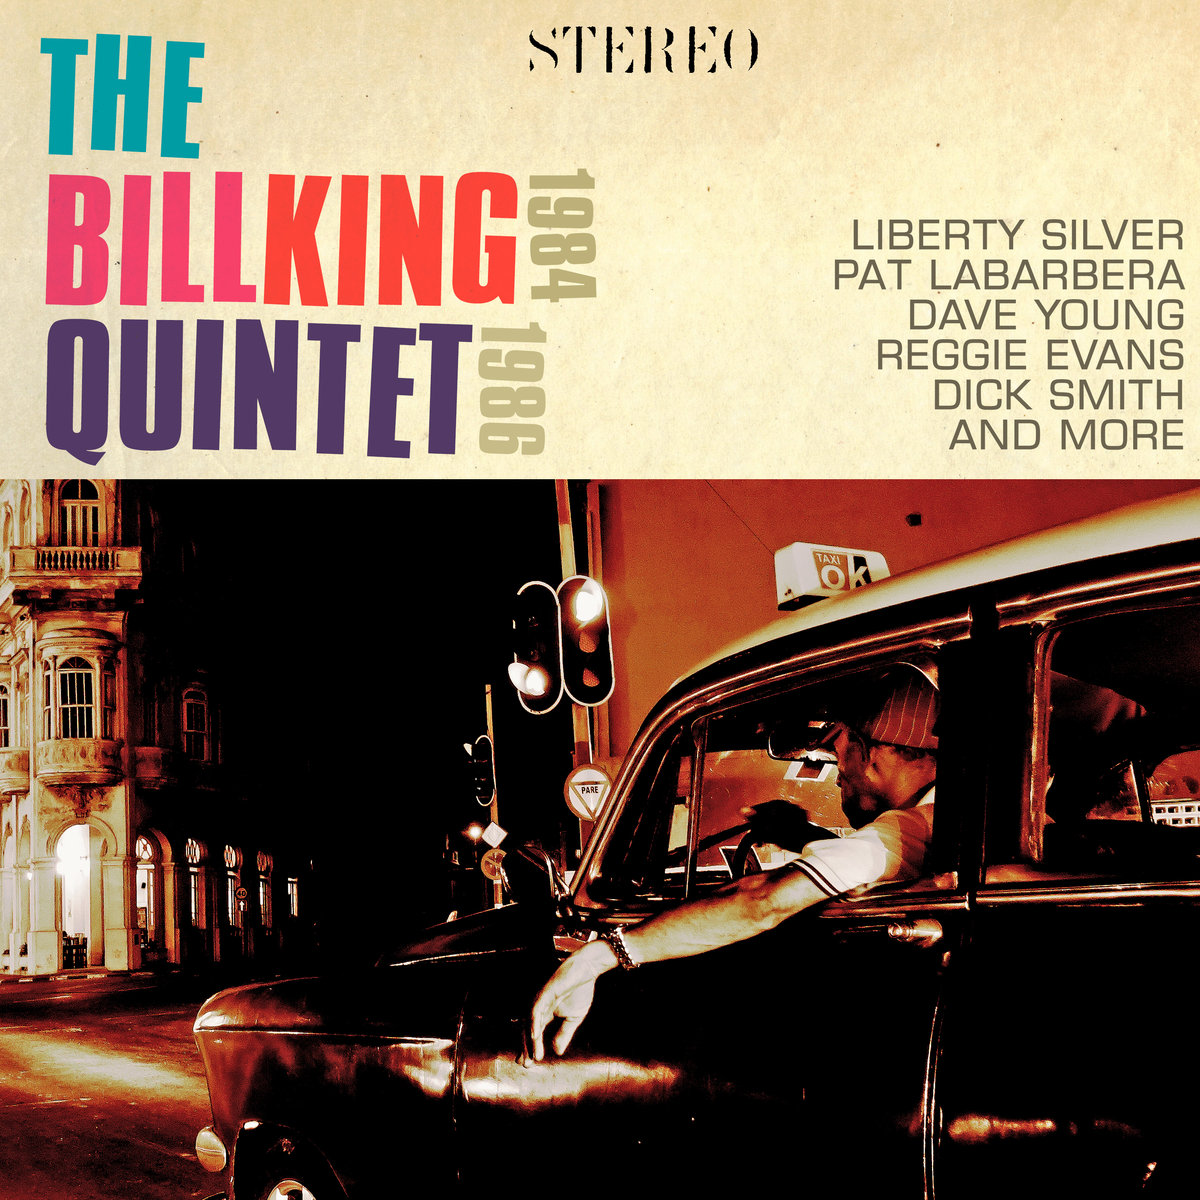 Bill King Quintet | Night Passage Years – 1984-1986